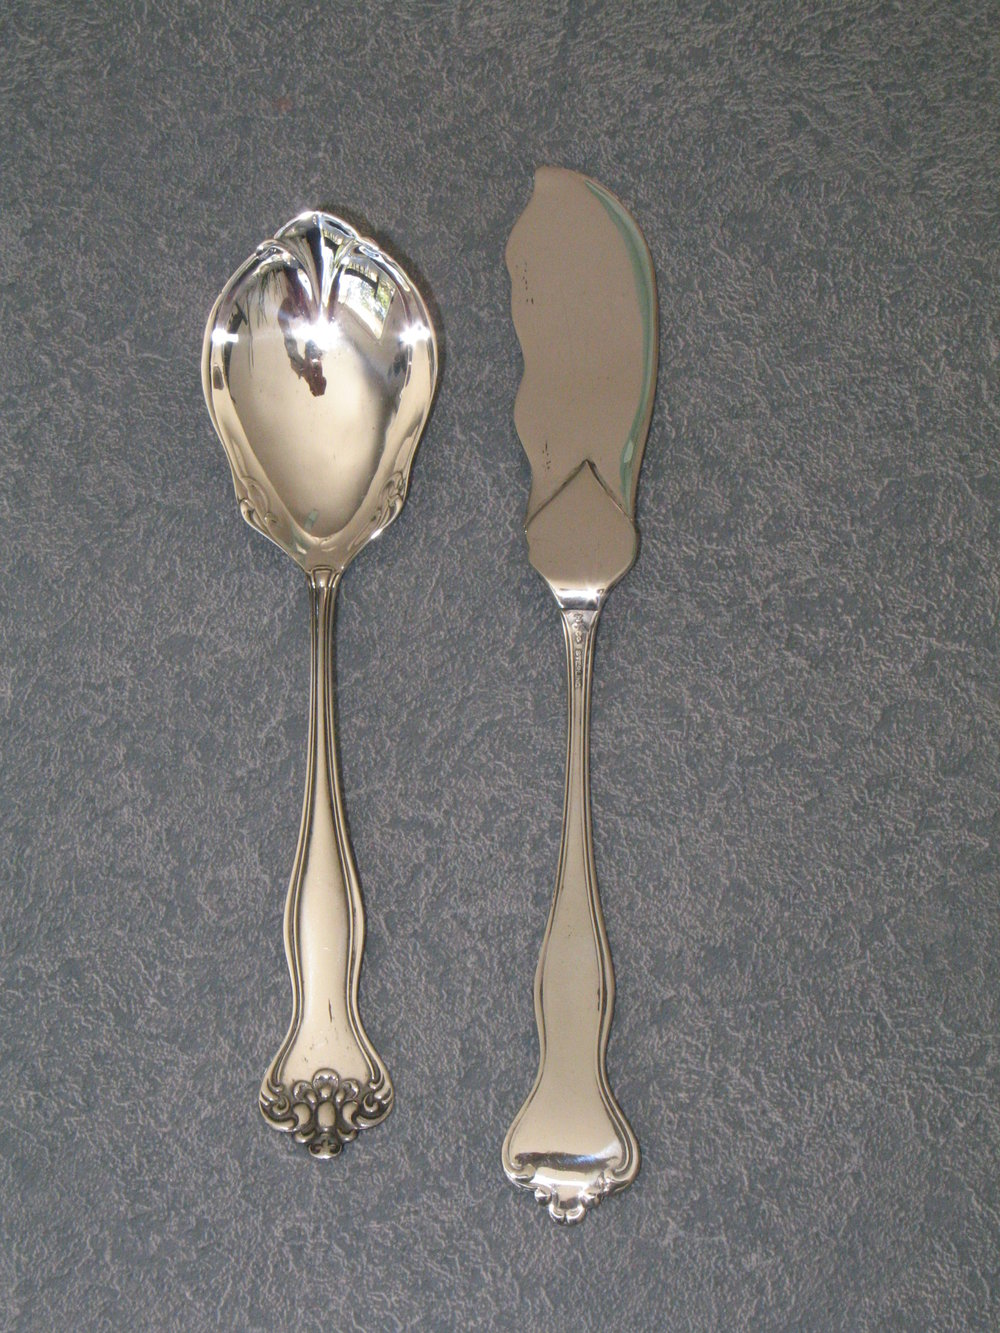 sterling silver jelly spoon and butter knife